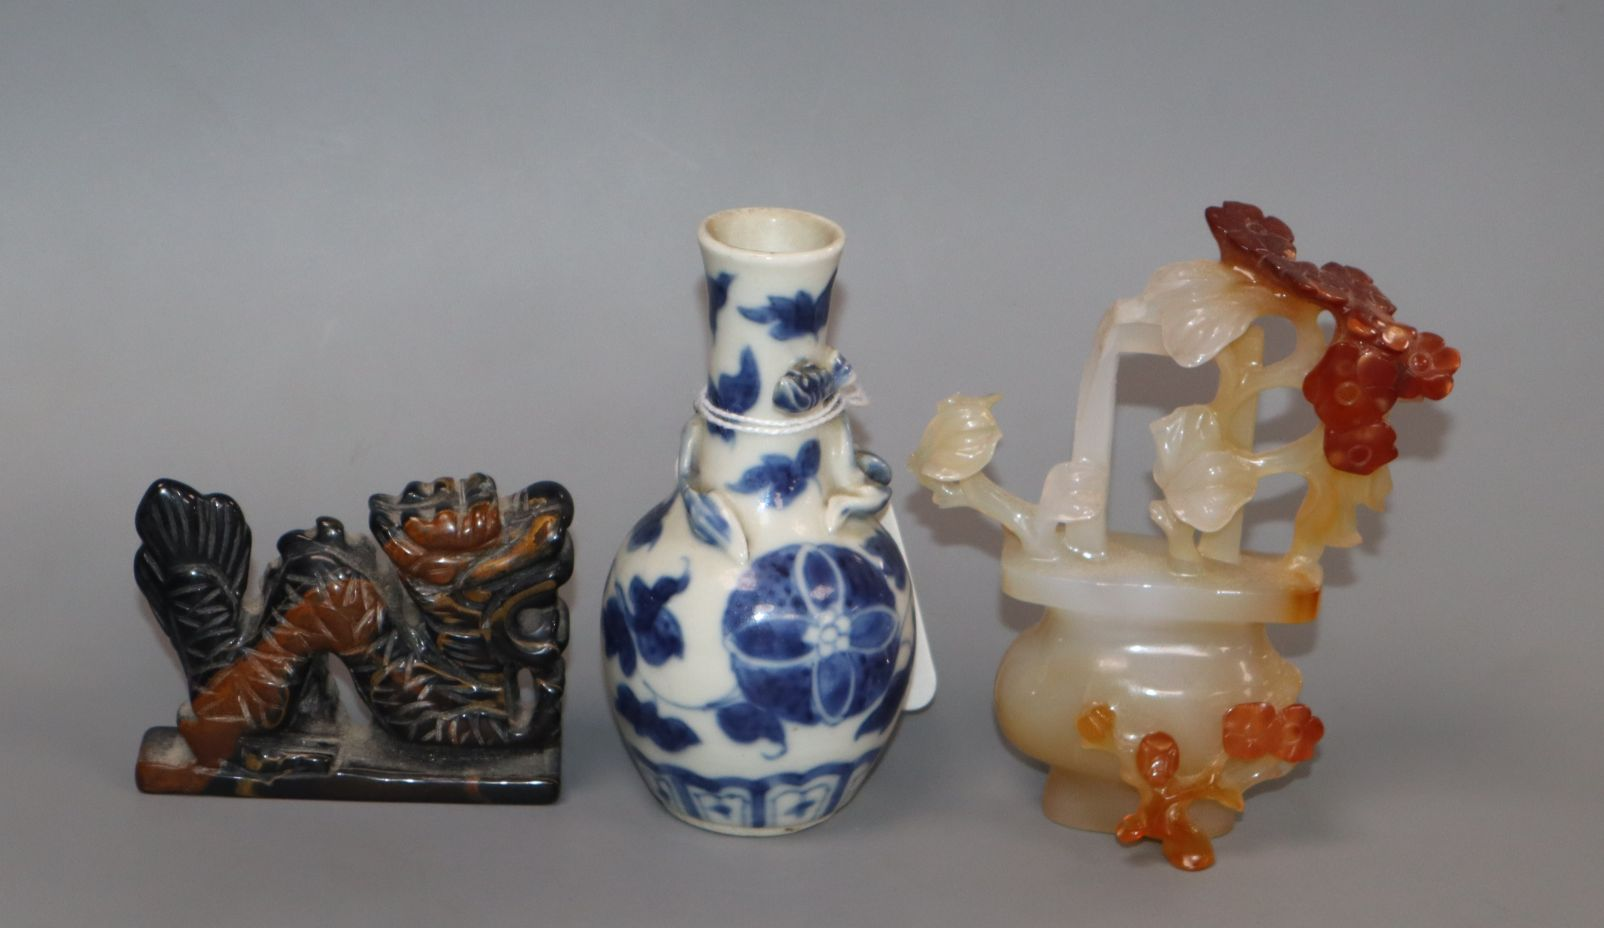 Lot 303 - A small Chinese blue and white vase, a chalcedony basket of flowers and a dragon figure